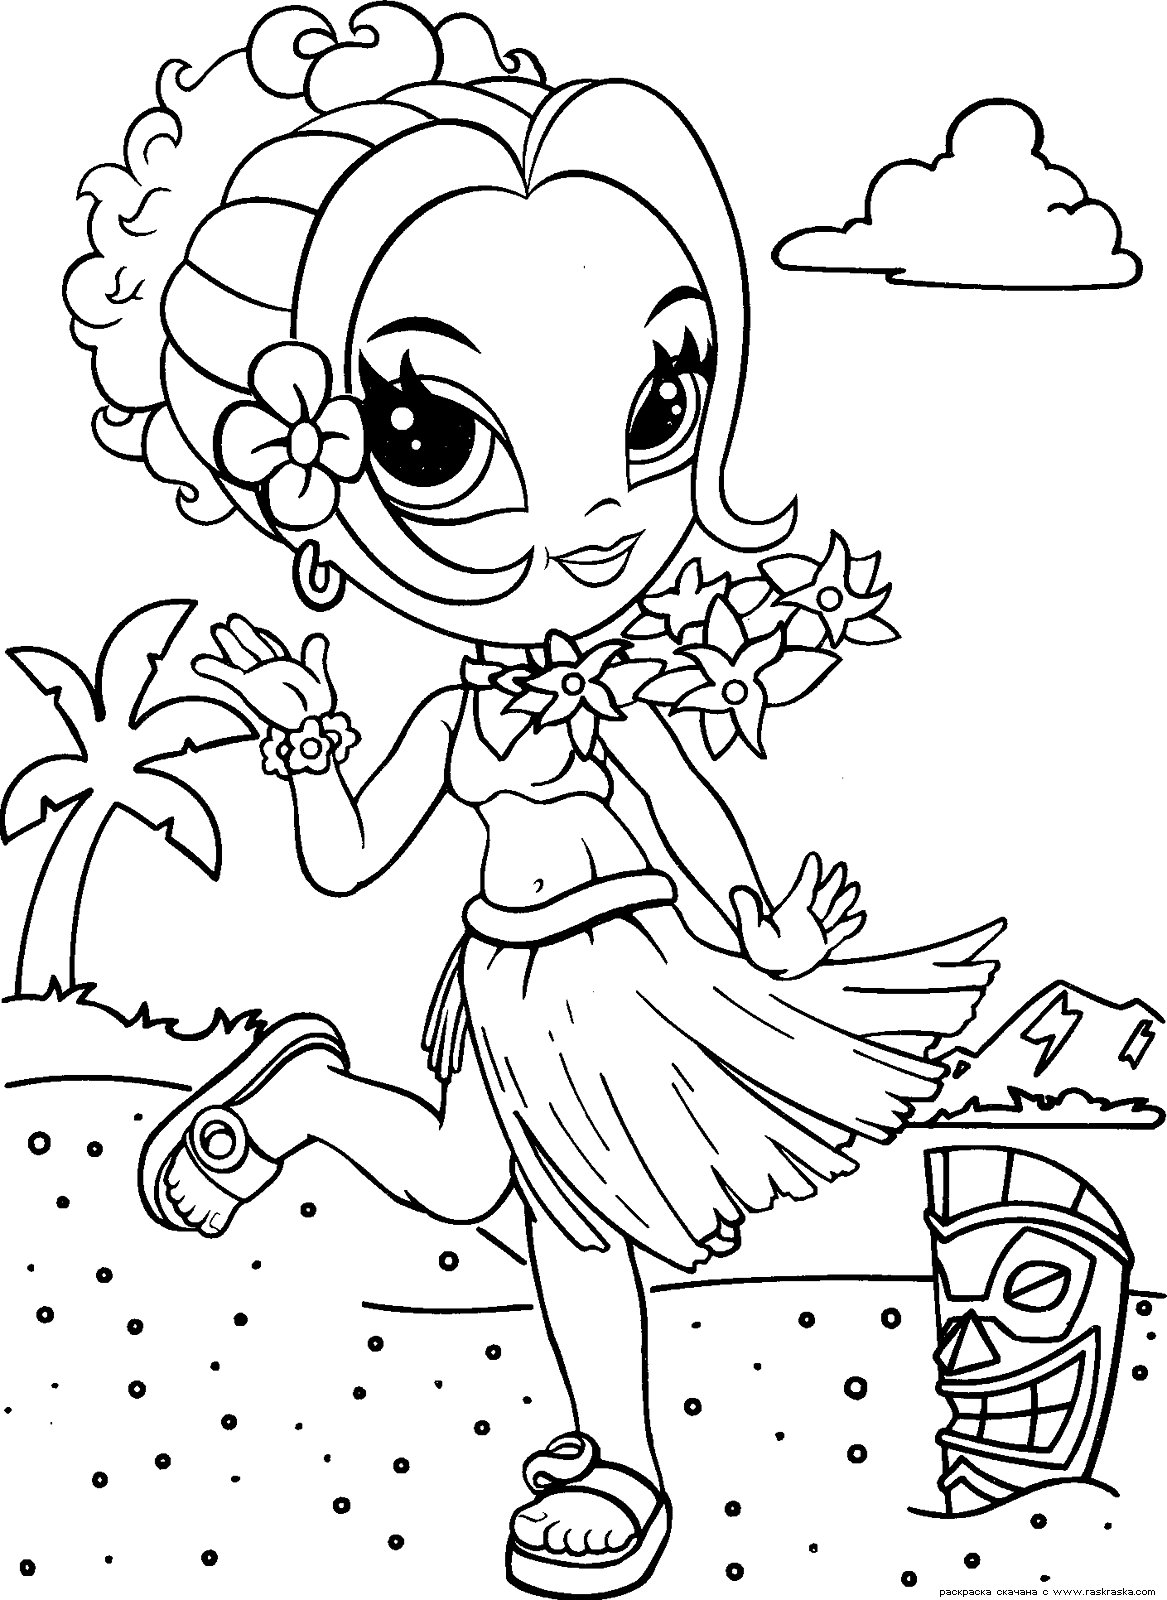 free animal coloring pages for kids easy animal coloring pages for kids at getcoloringscom for pages free animal coloring kids